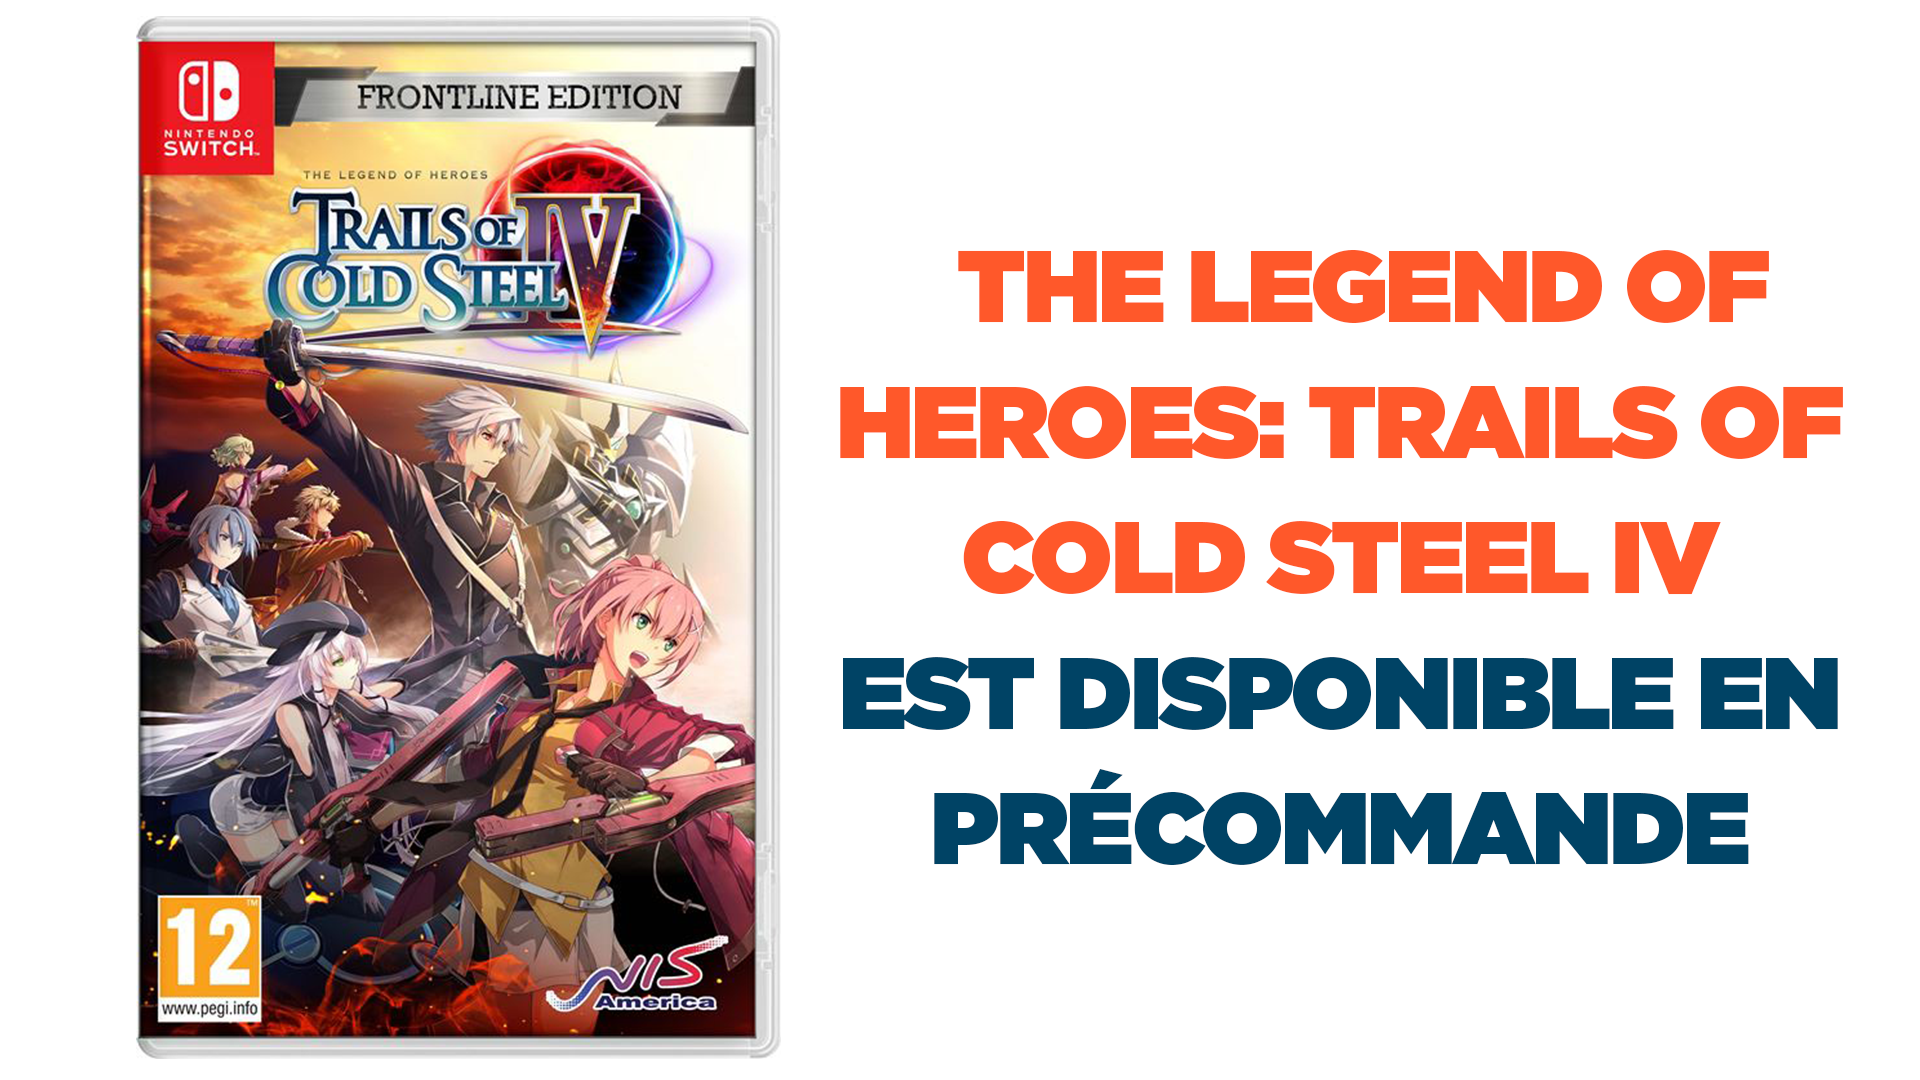 The Legend Of Heroes: Trails Of Cold Steel IV - Frontline Edition available for preorder